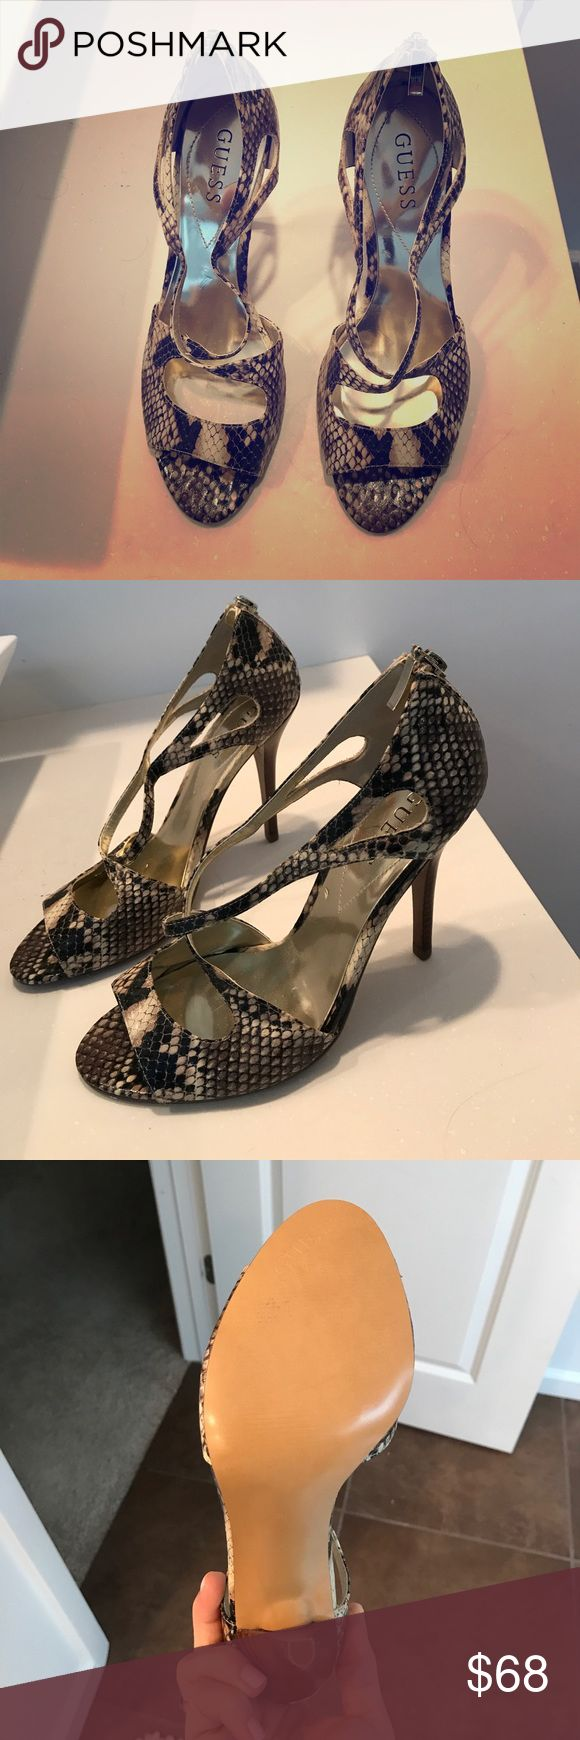 Snakeskin Heels Strappy Snakeskin Heels, never worn! Guess Shoes Heels